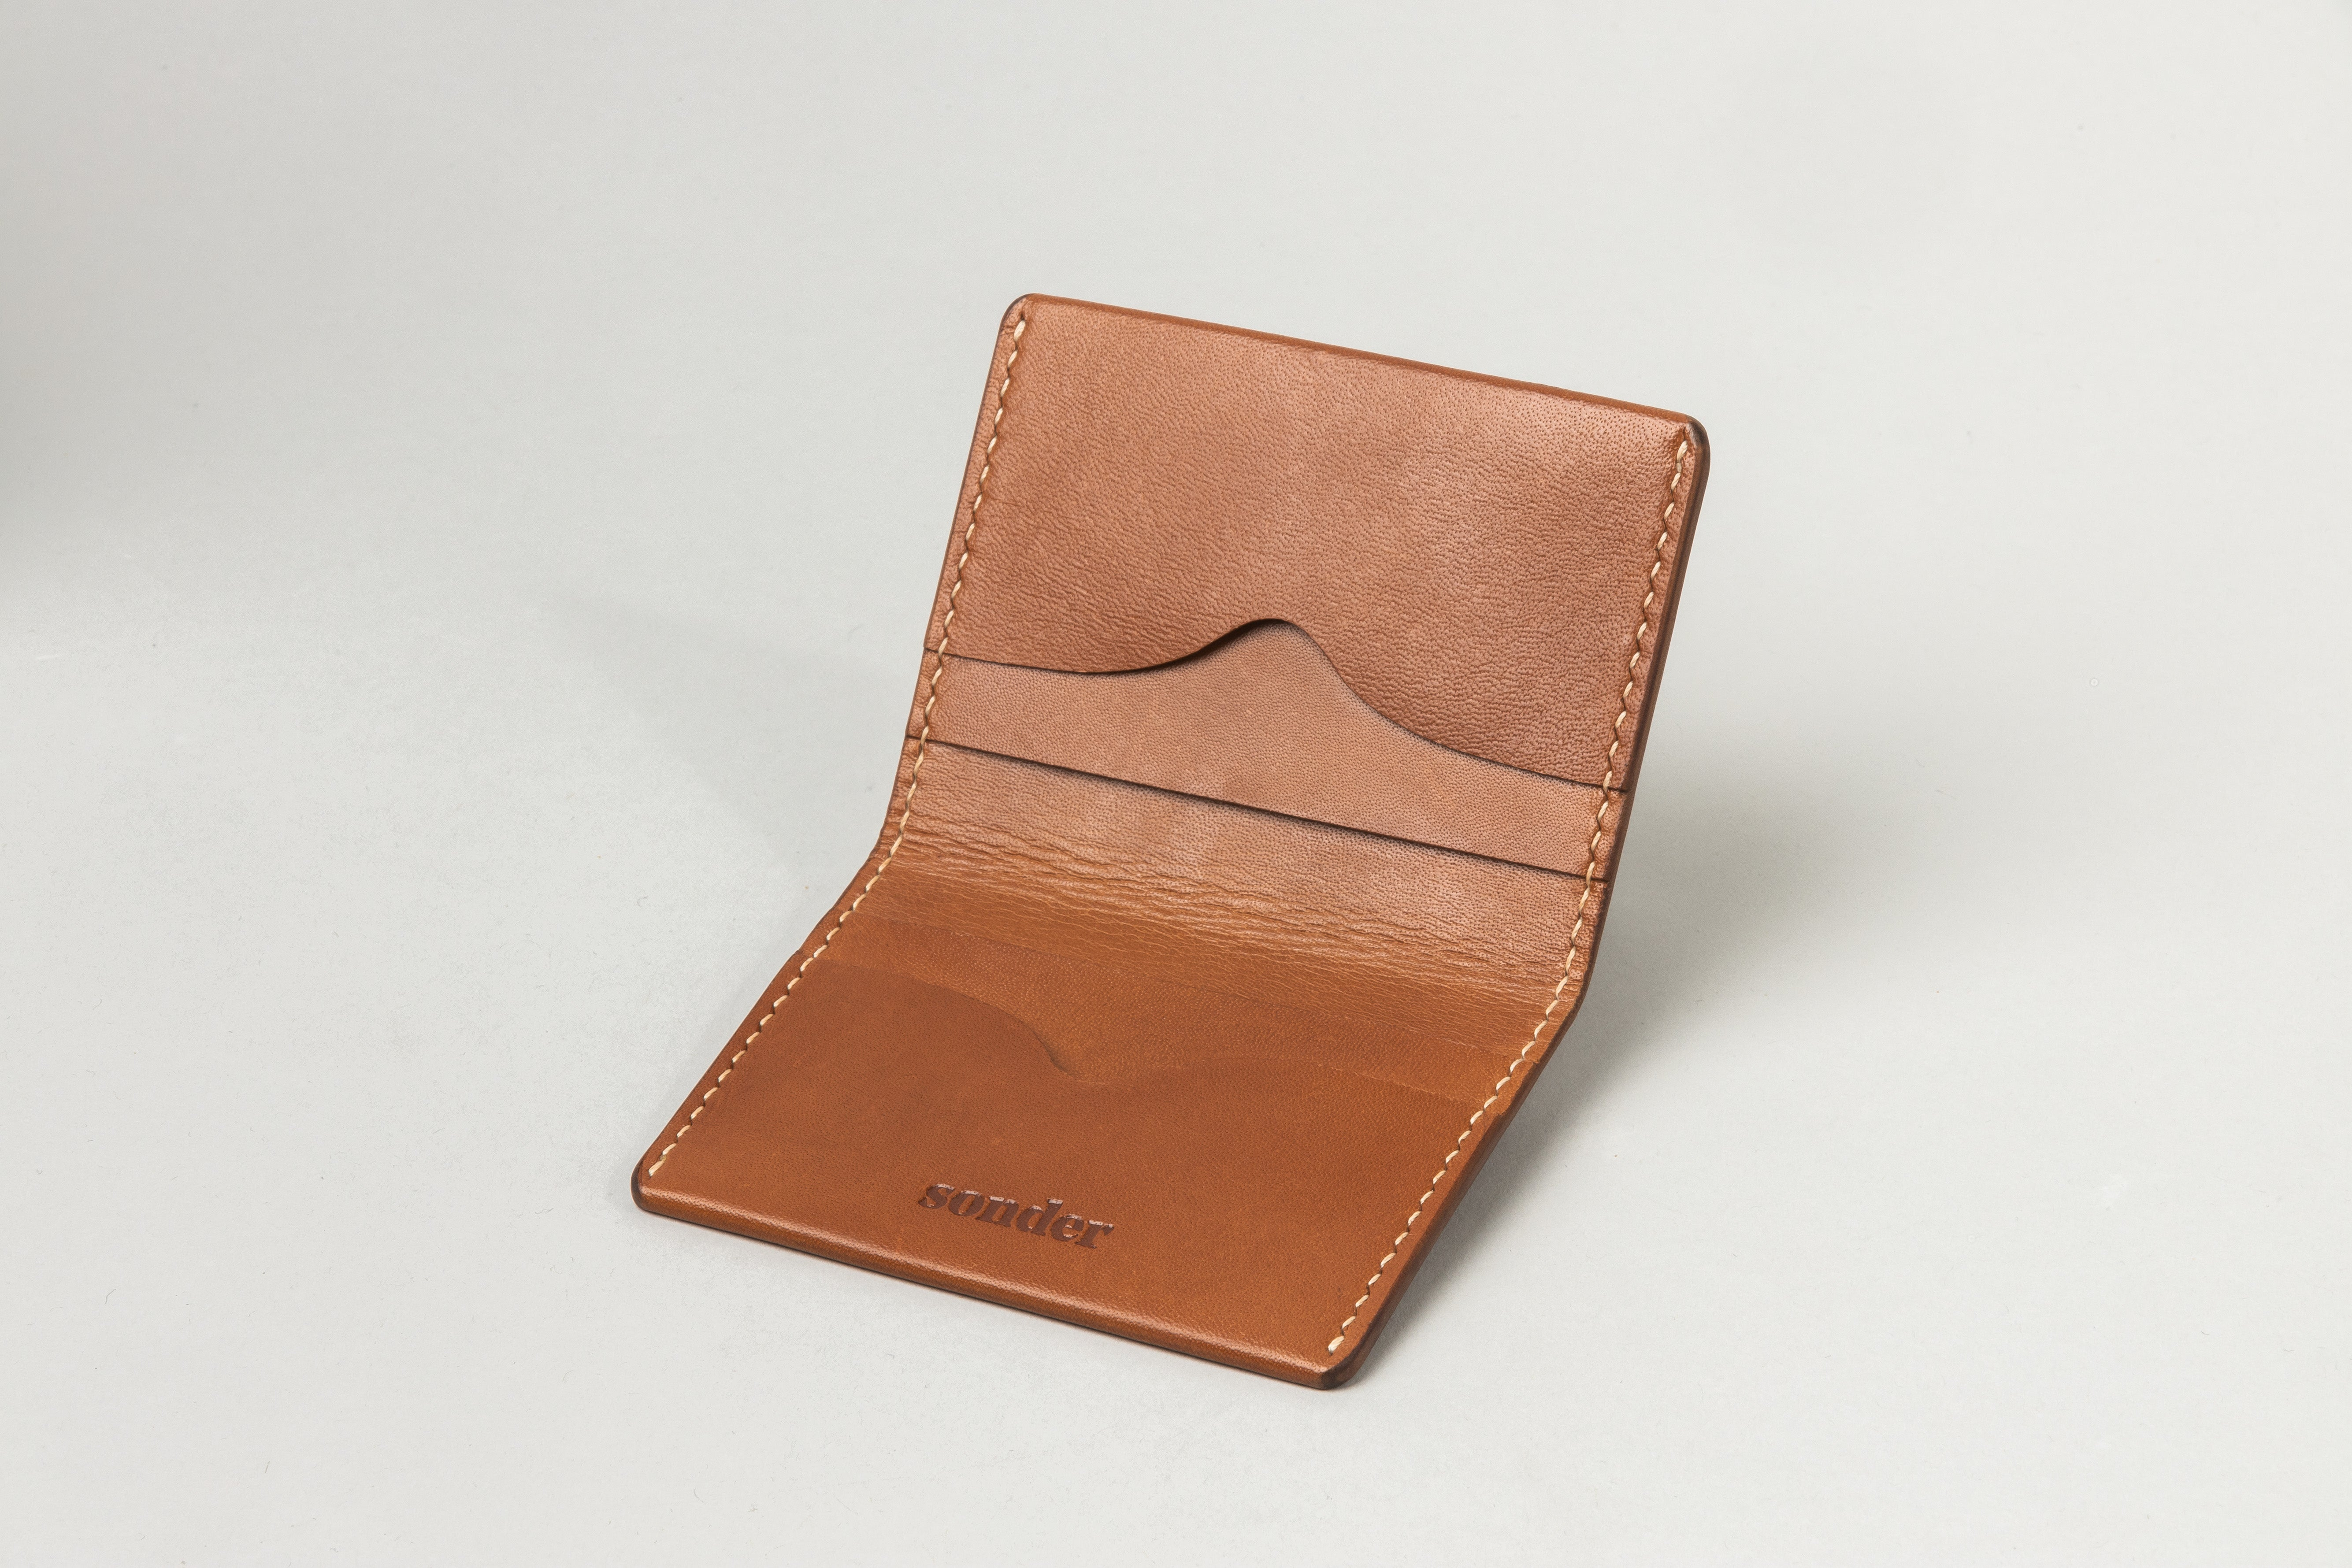 Driving Wallet - Tan